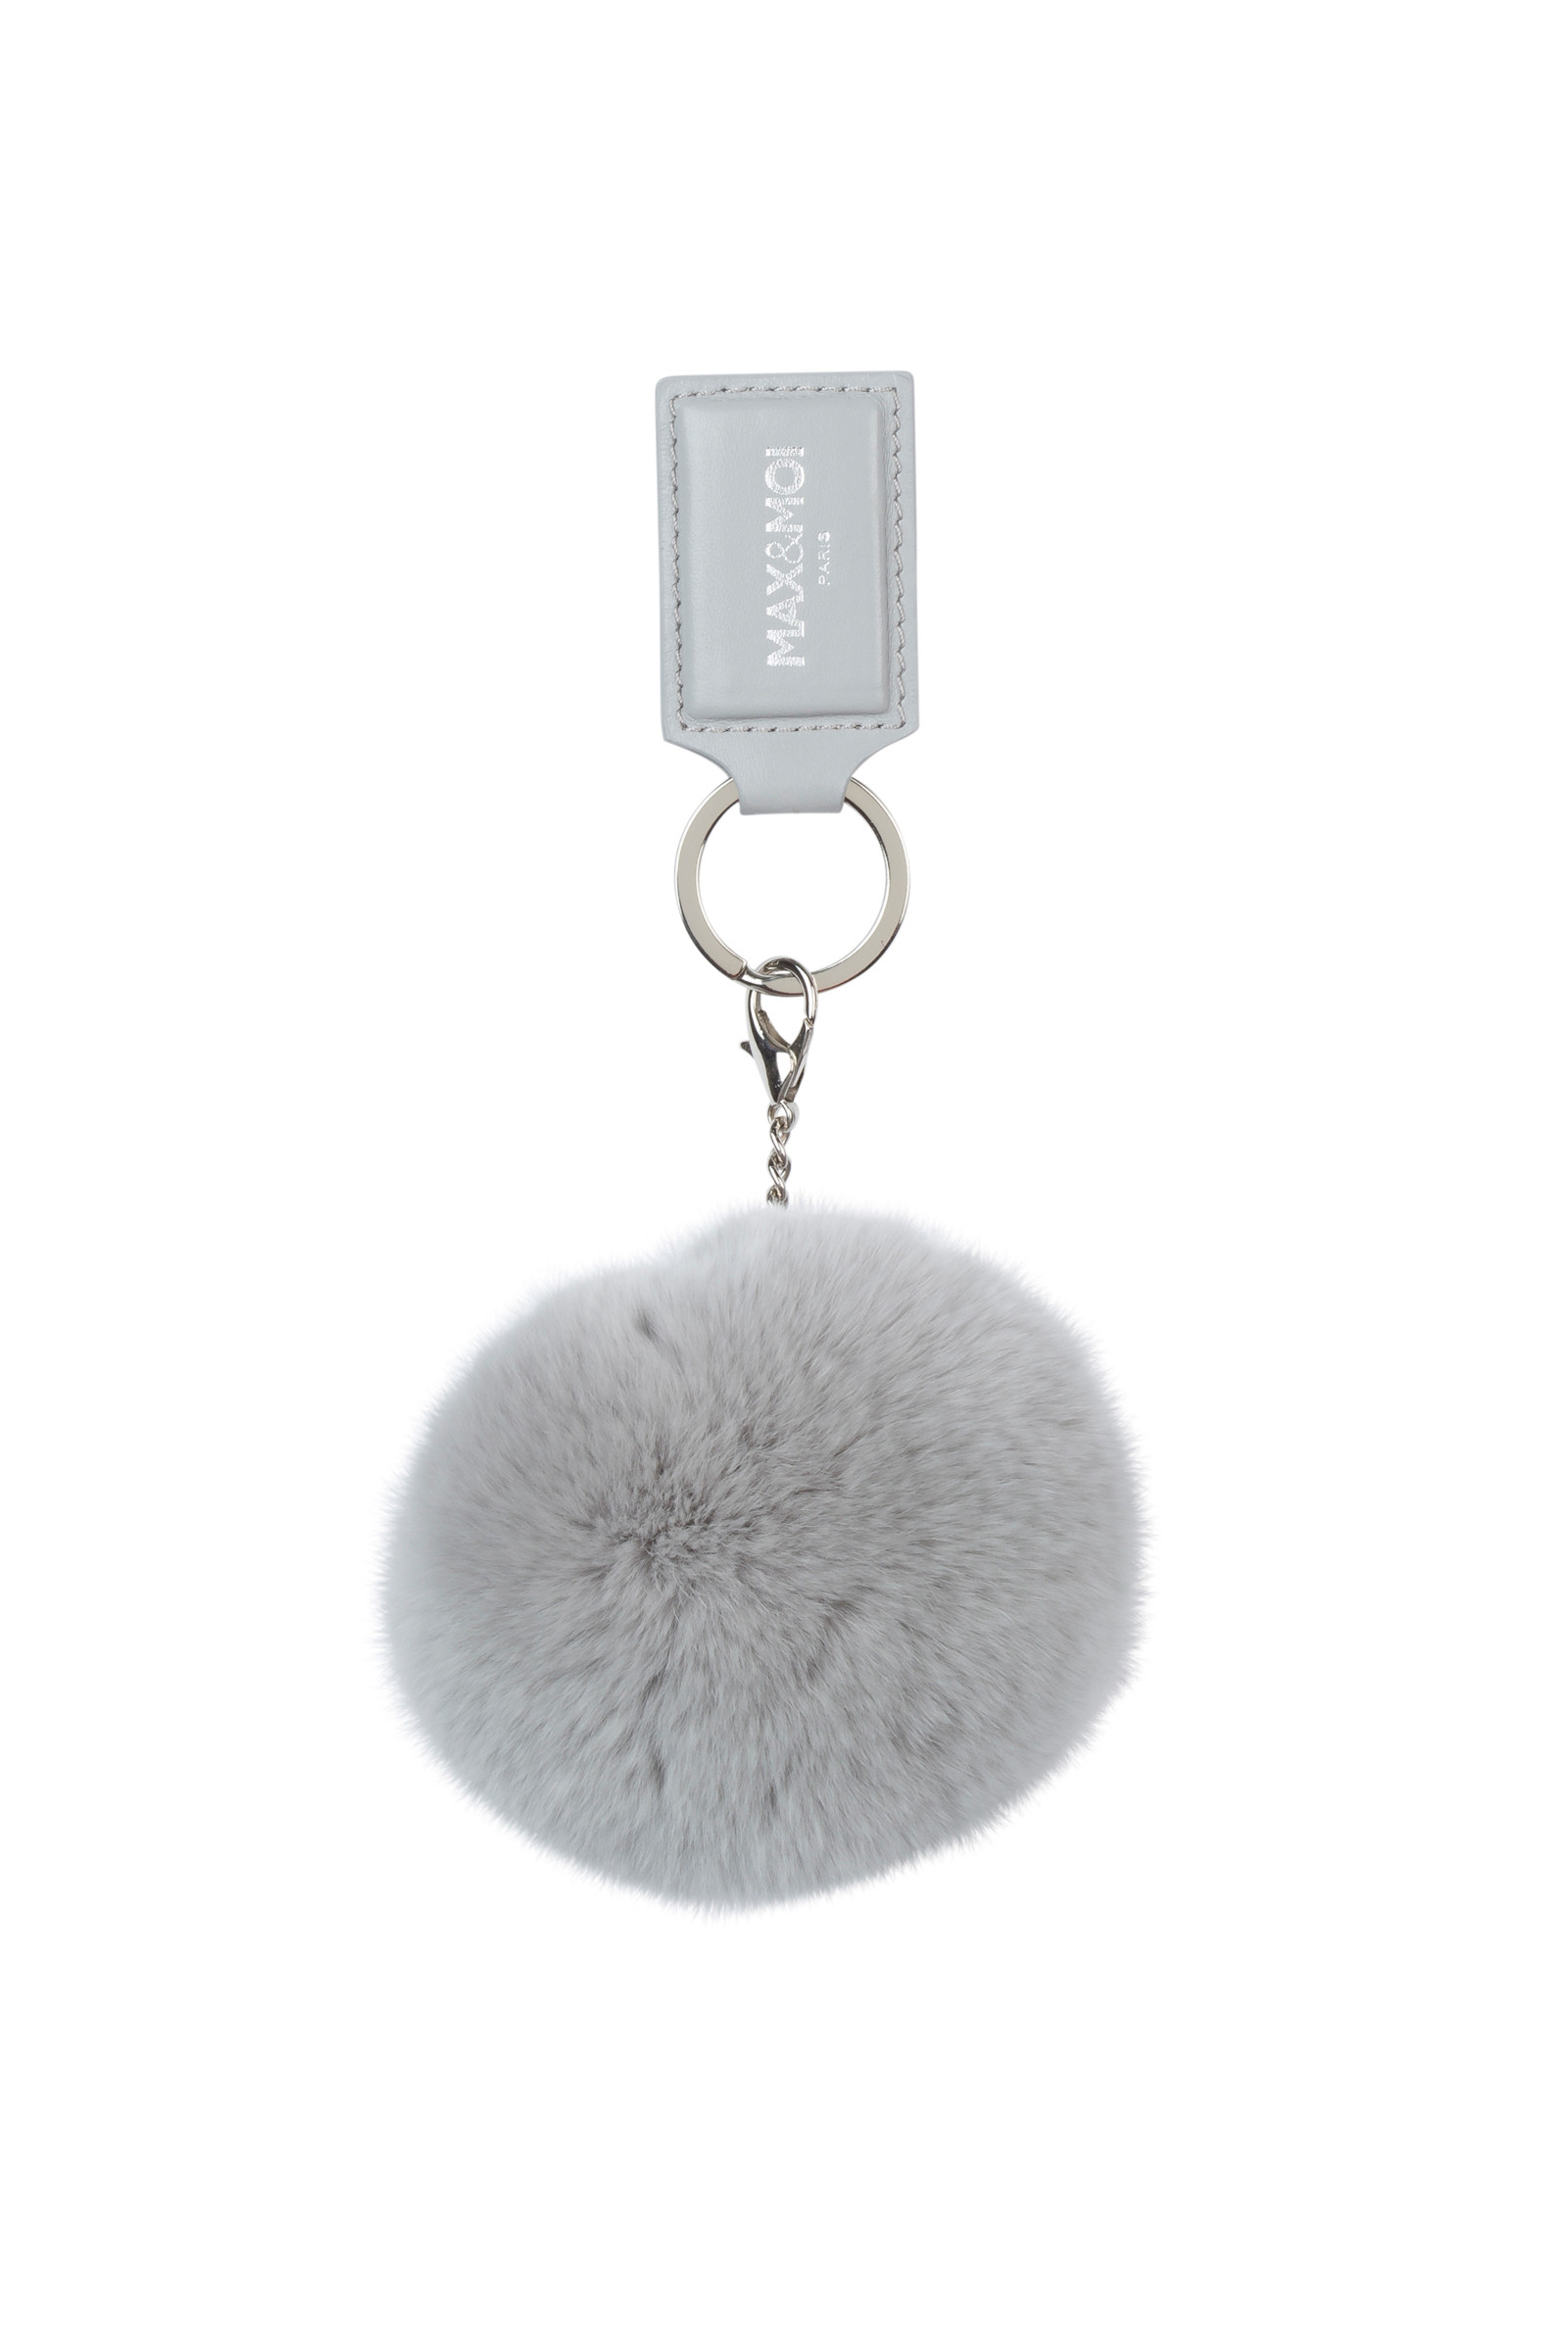 KEY RING ALICIO IN LEATHER AND FUR GREY